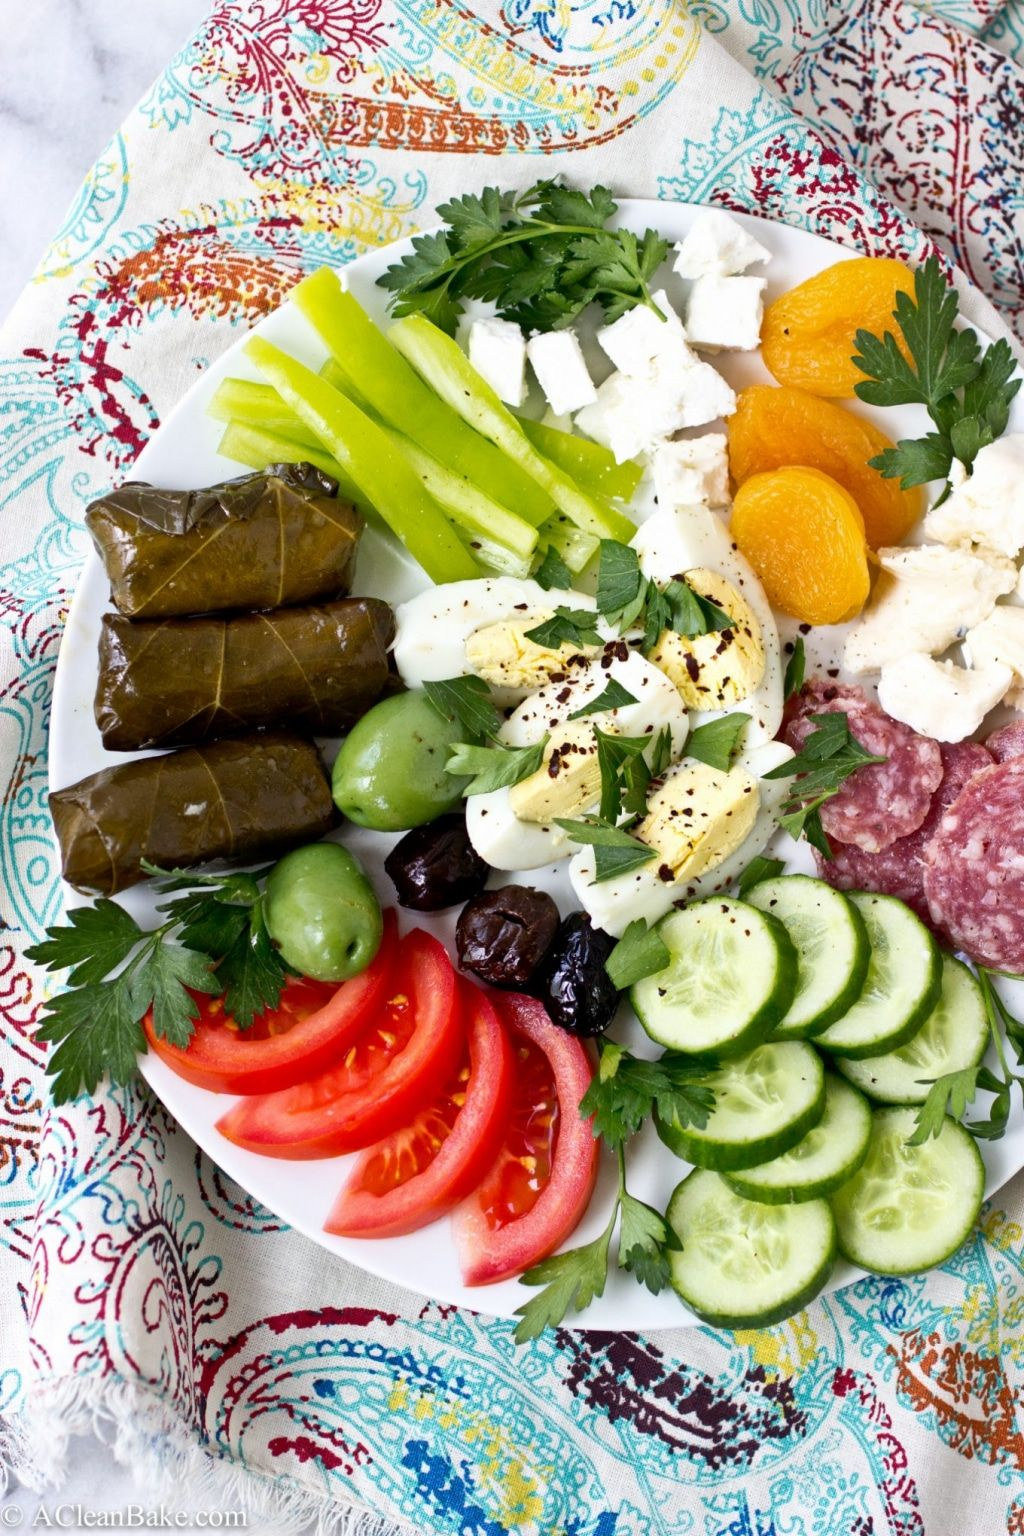 Turkish Breakfast | Gluten Free Full Turkish Breakfast | A Clean Bake